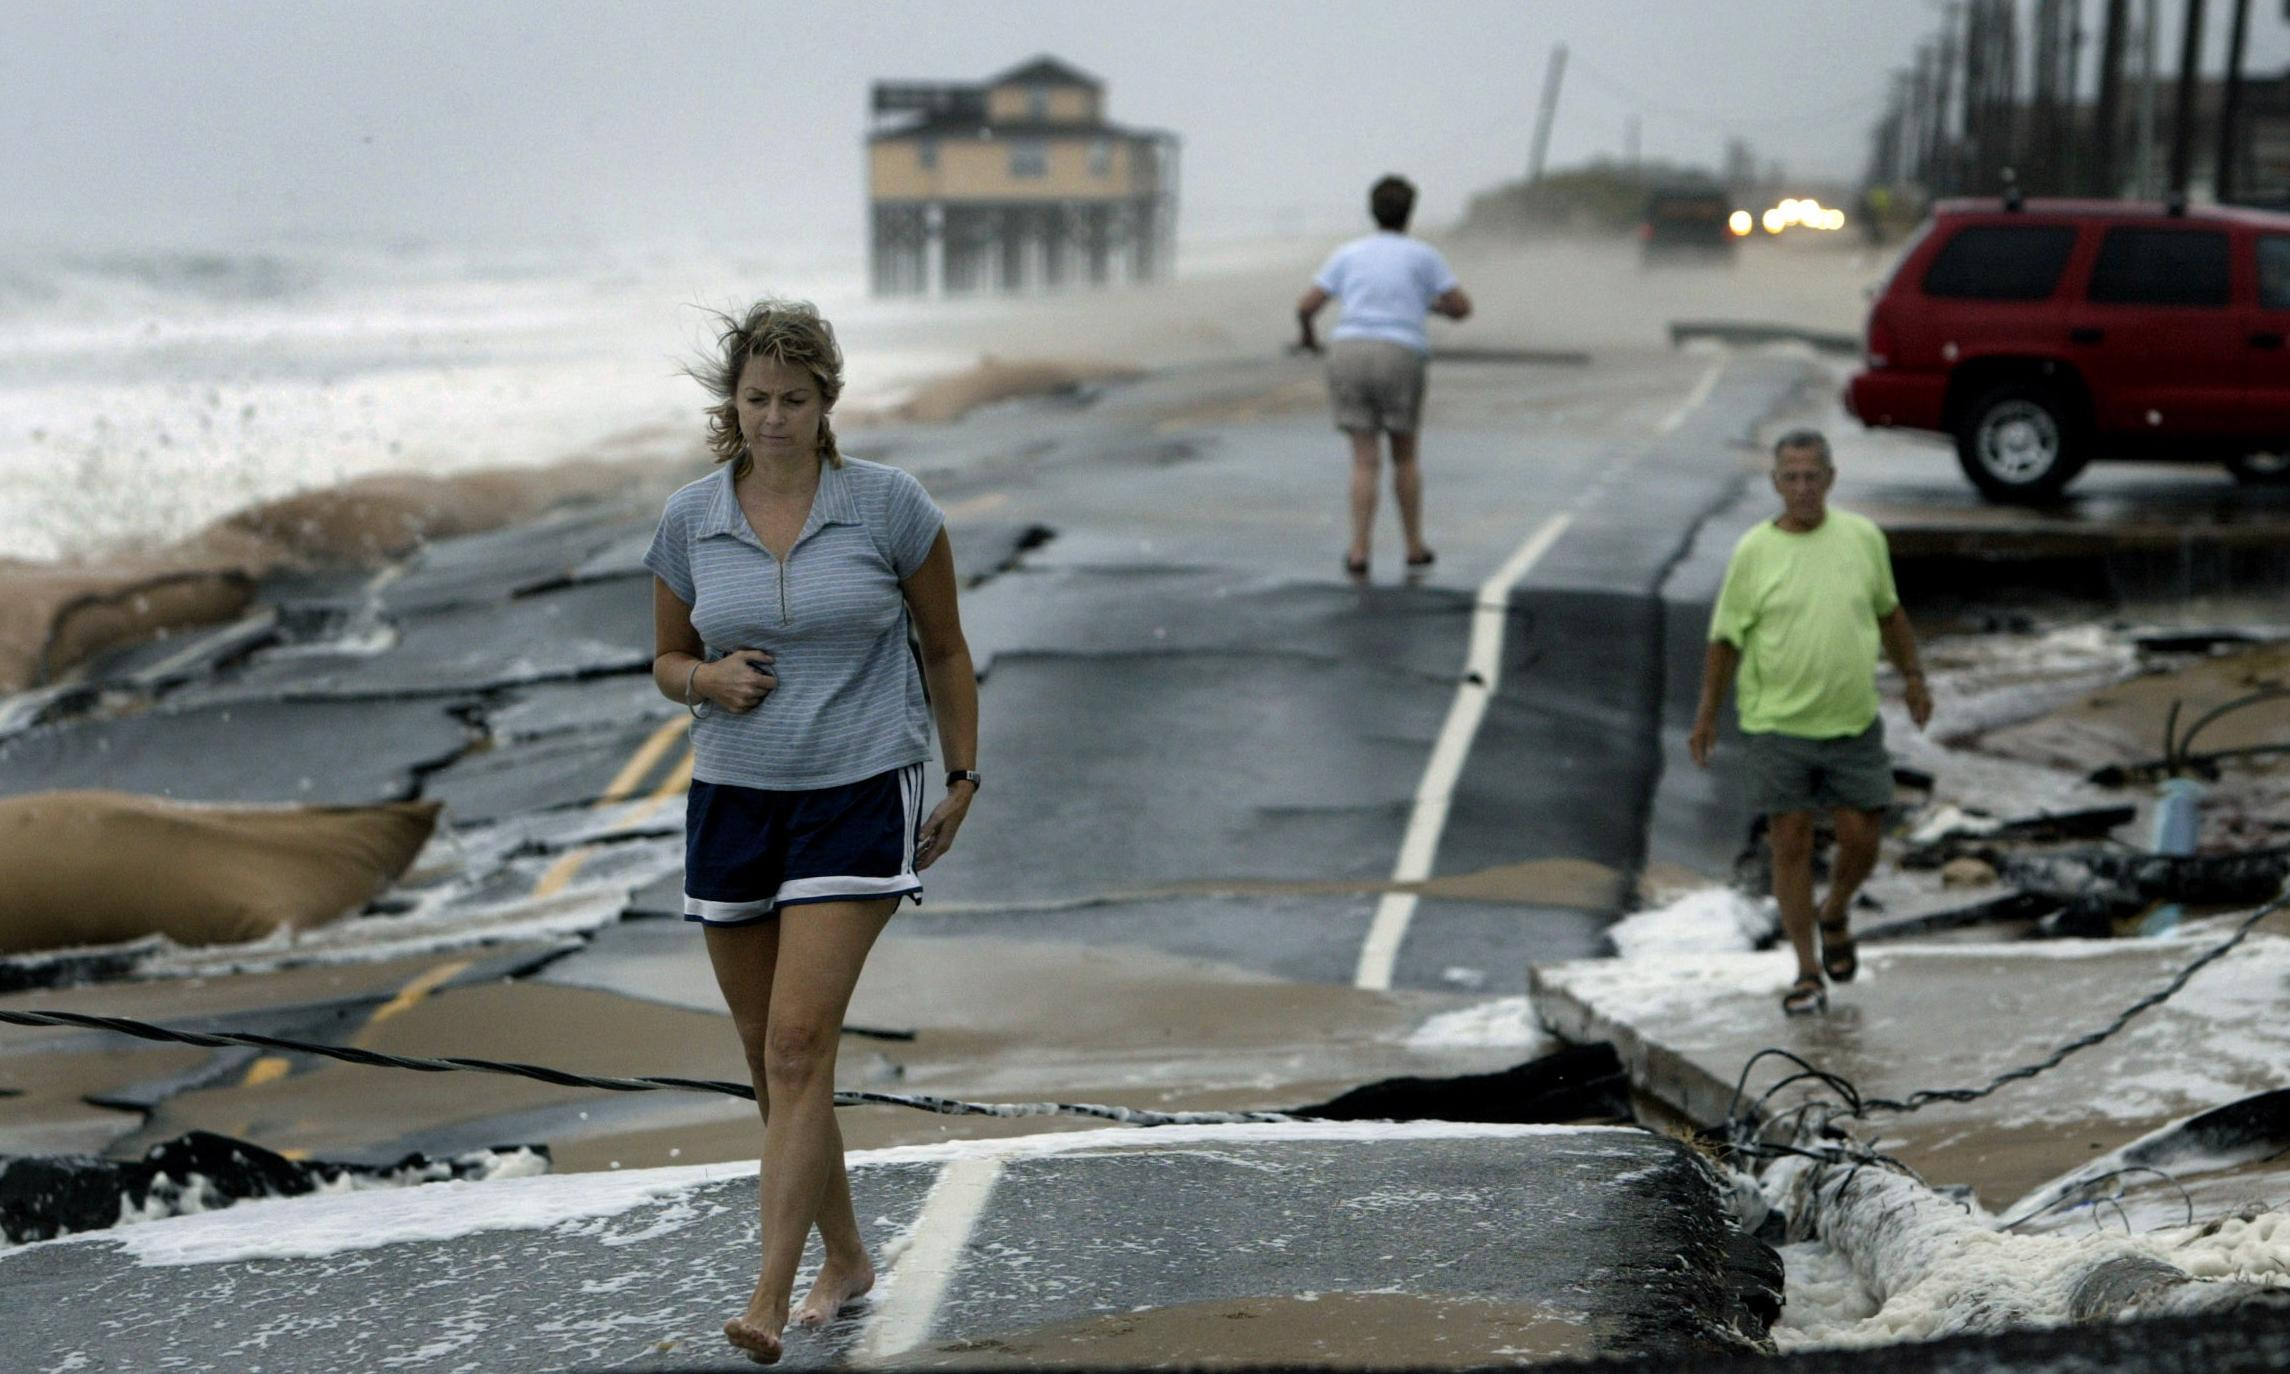 Three people walk on a road that's been broken apart by a storm.